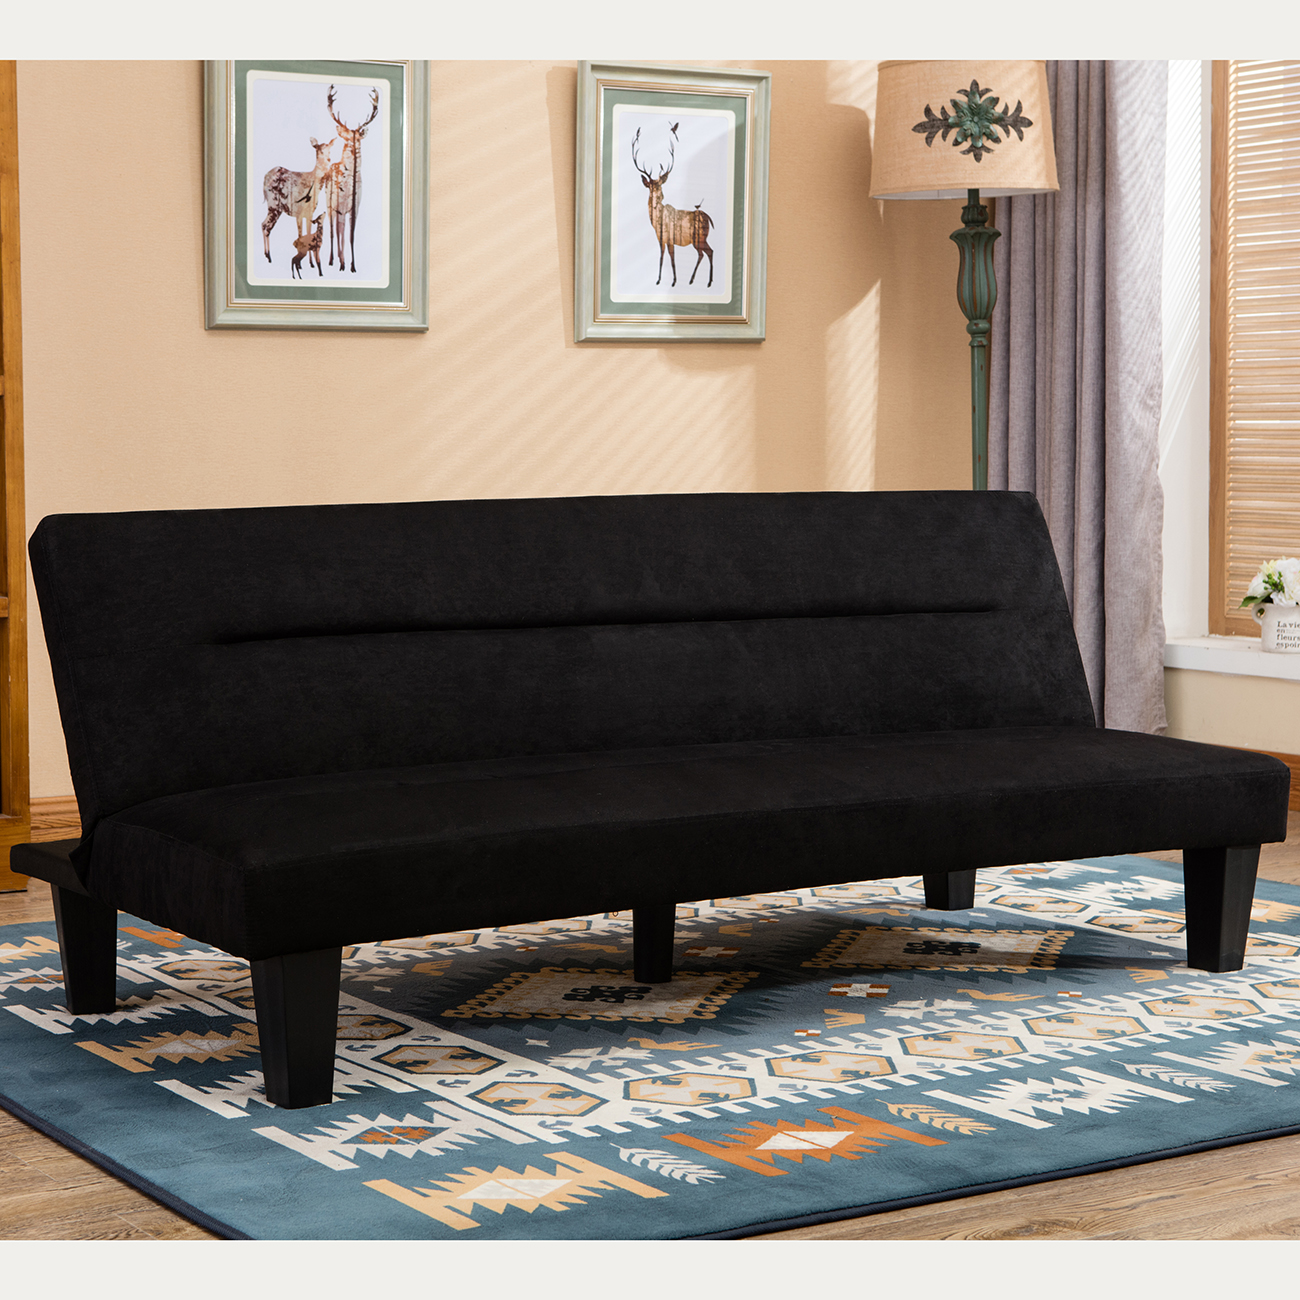 Futon Sofa Bed Furniture Convertible Microfiber Upholstery Couch